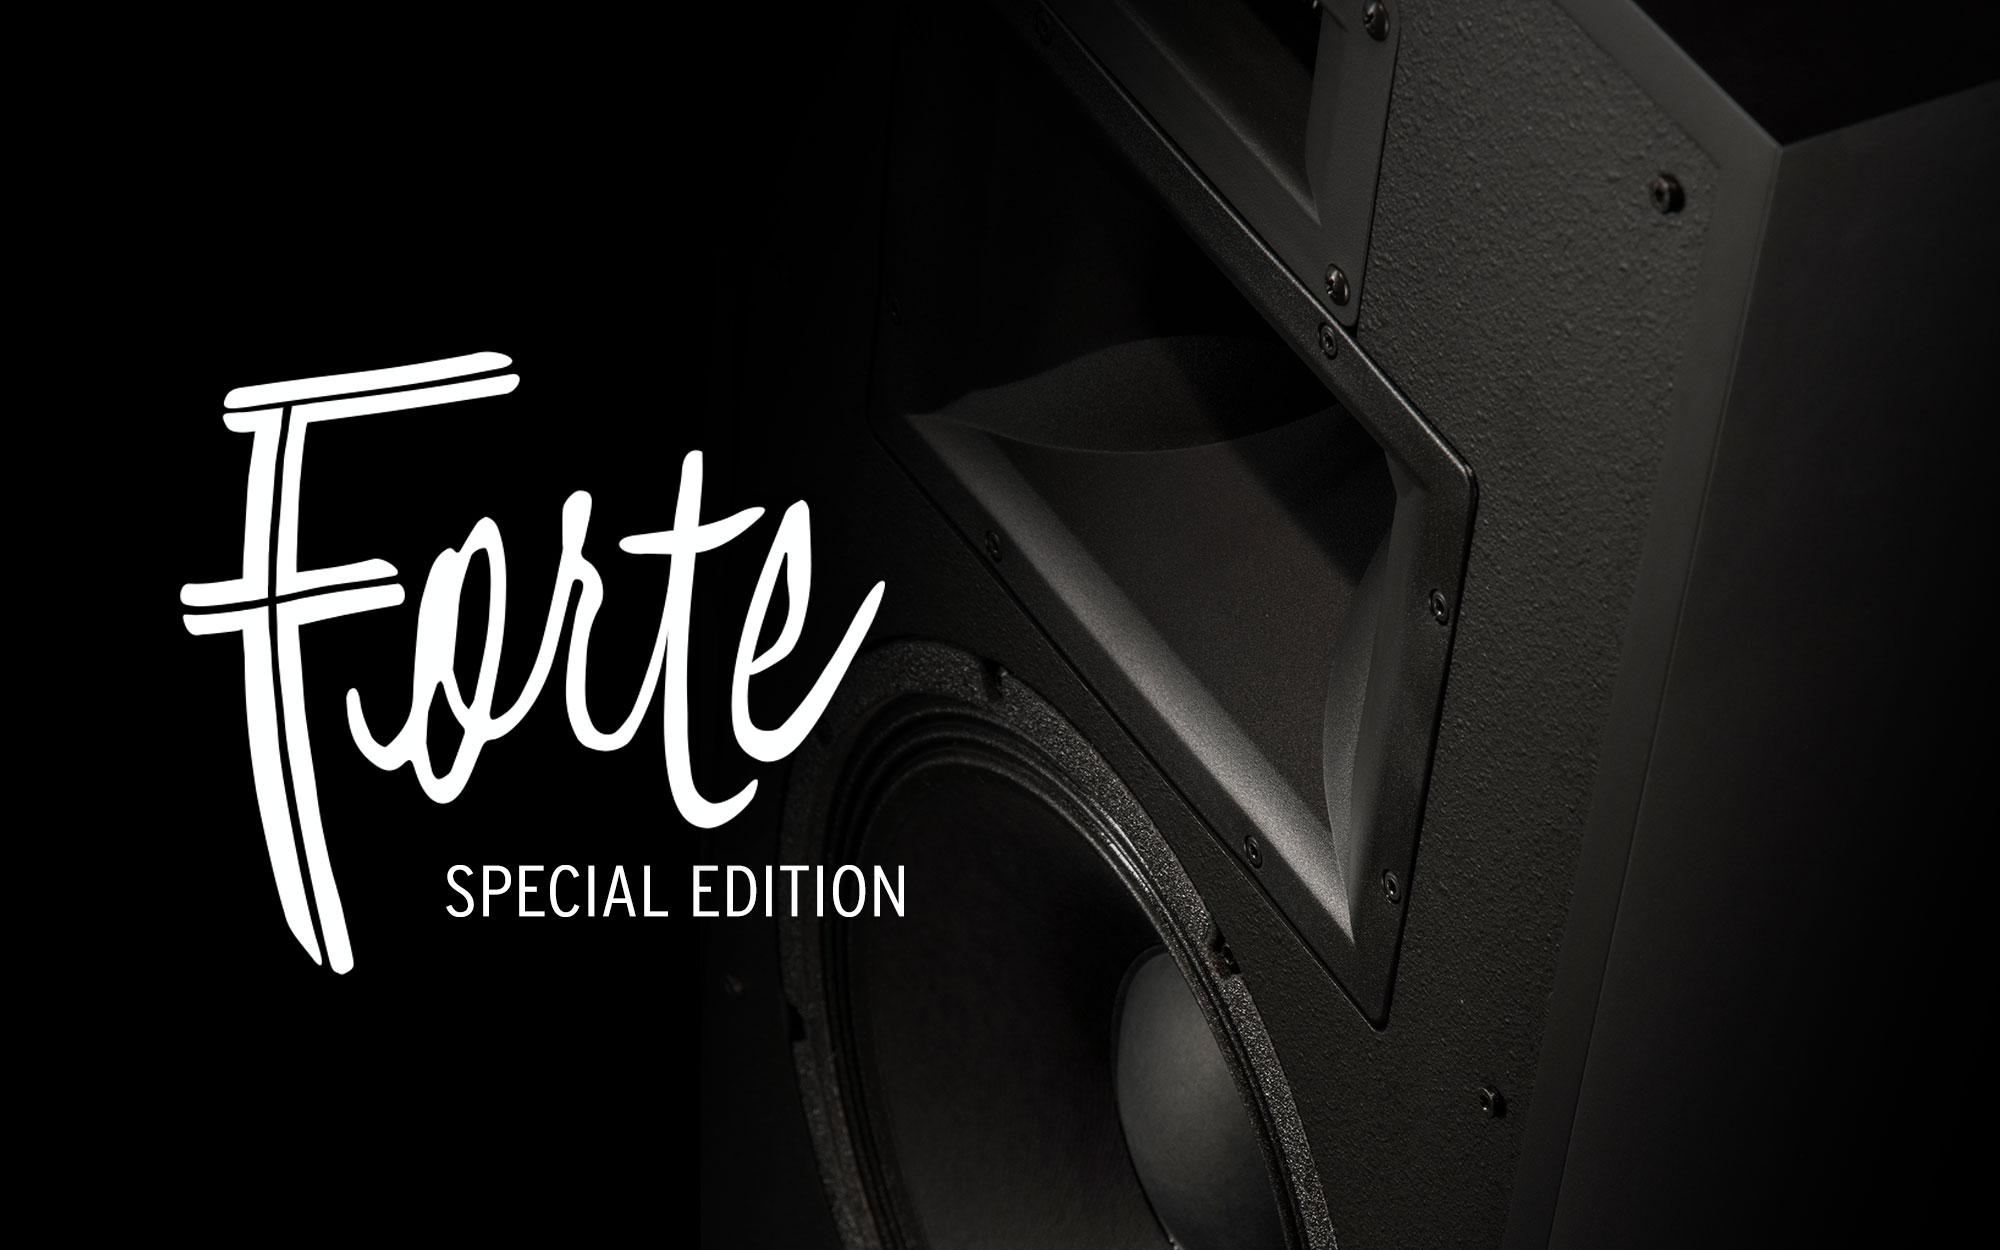 Forte III Special Edition